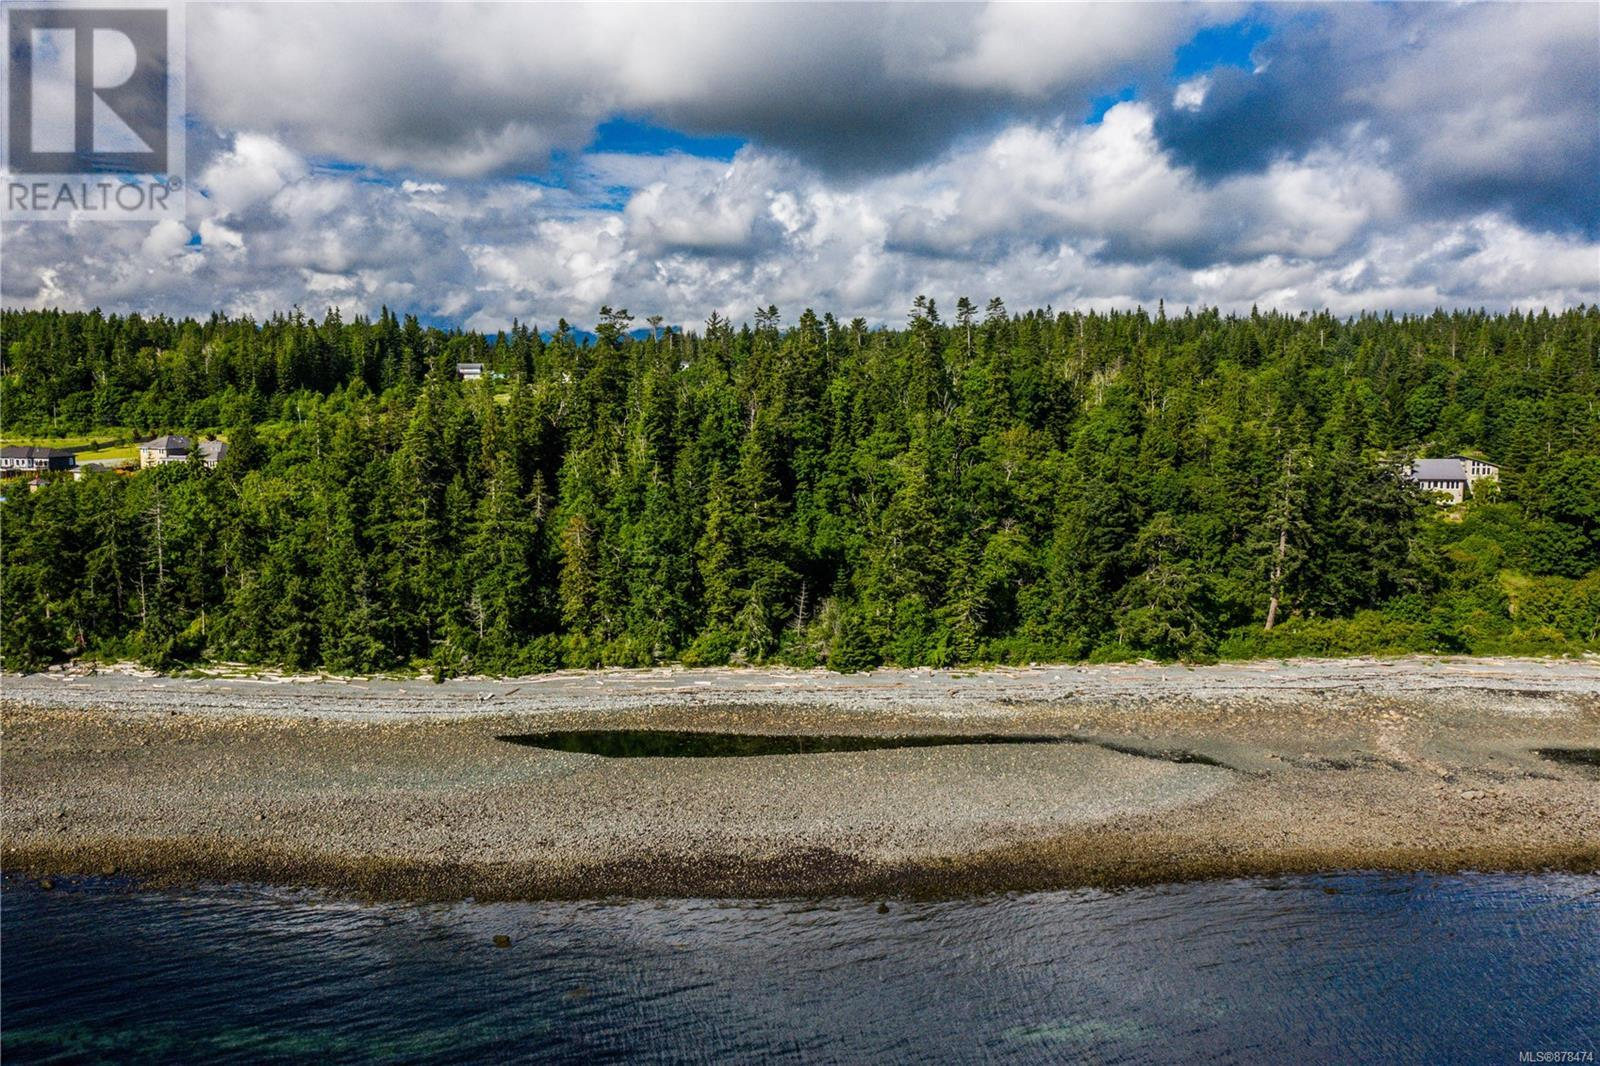 MLS® #878474 - Courtenay For sale Image #38